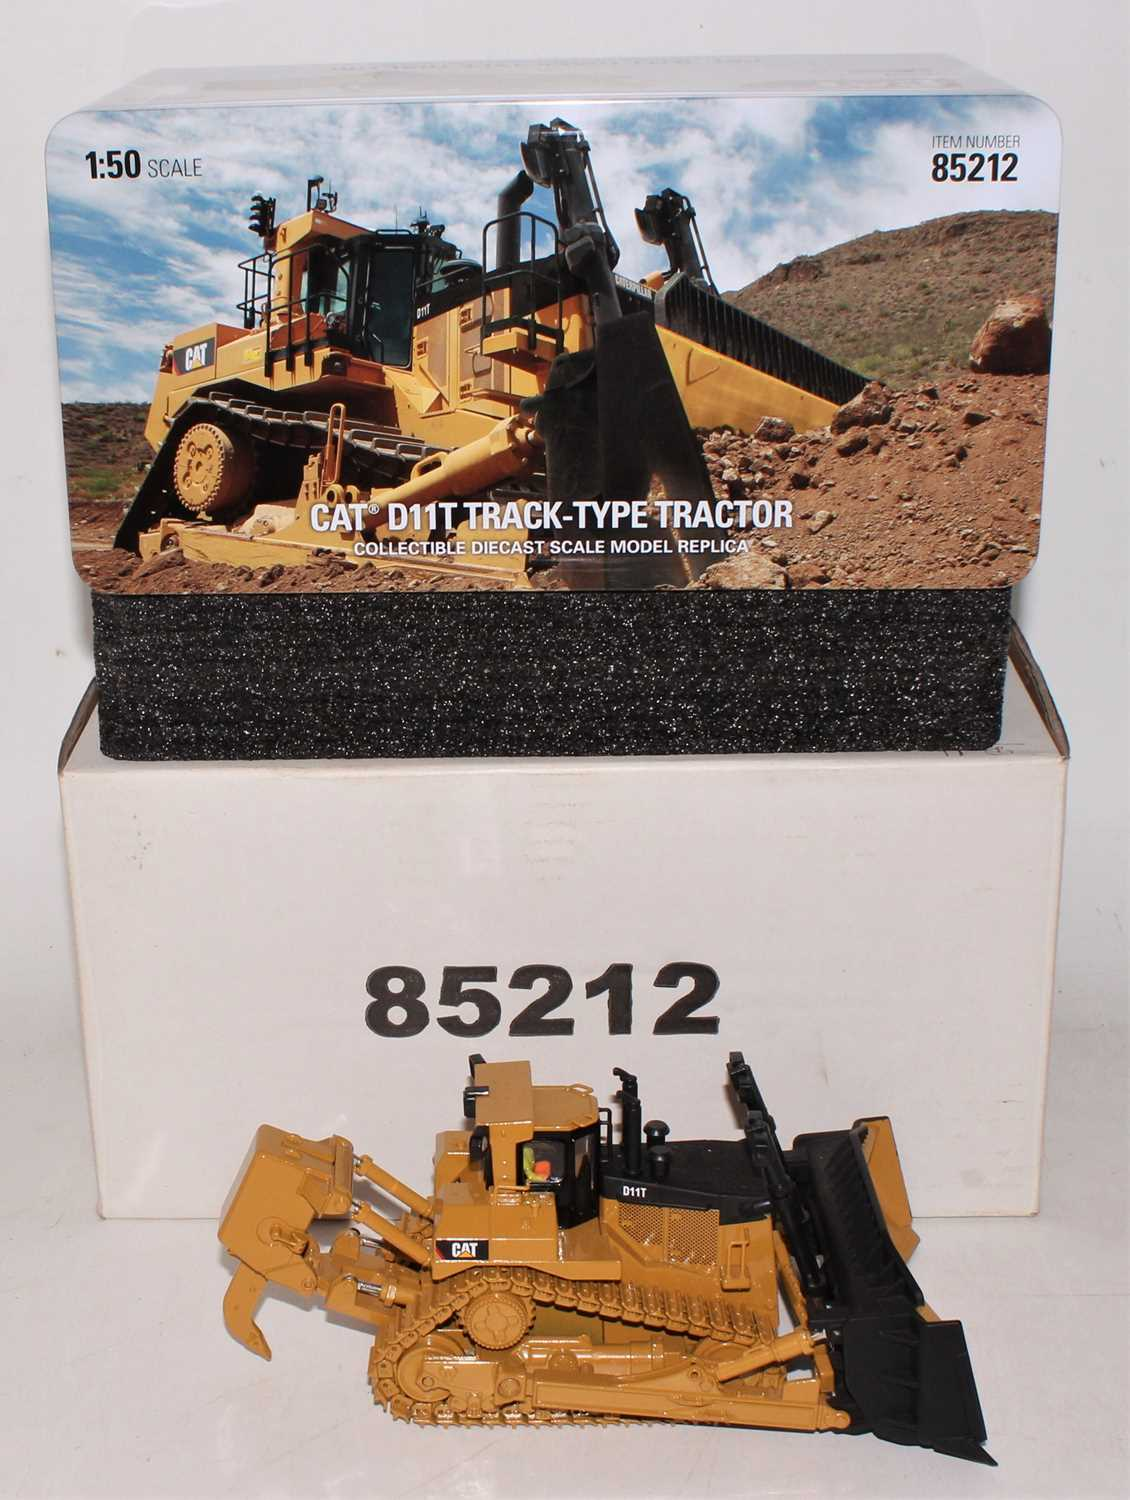 A diecast Masters Real Replicas Highline series model No.85212 1/50 scale model of a Caterpillar